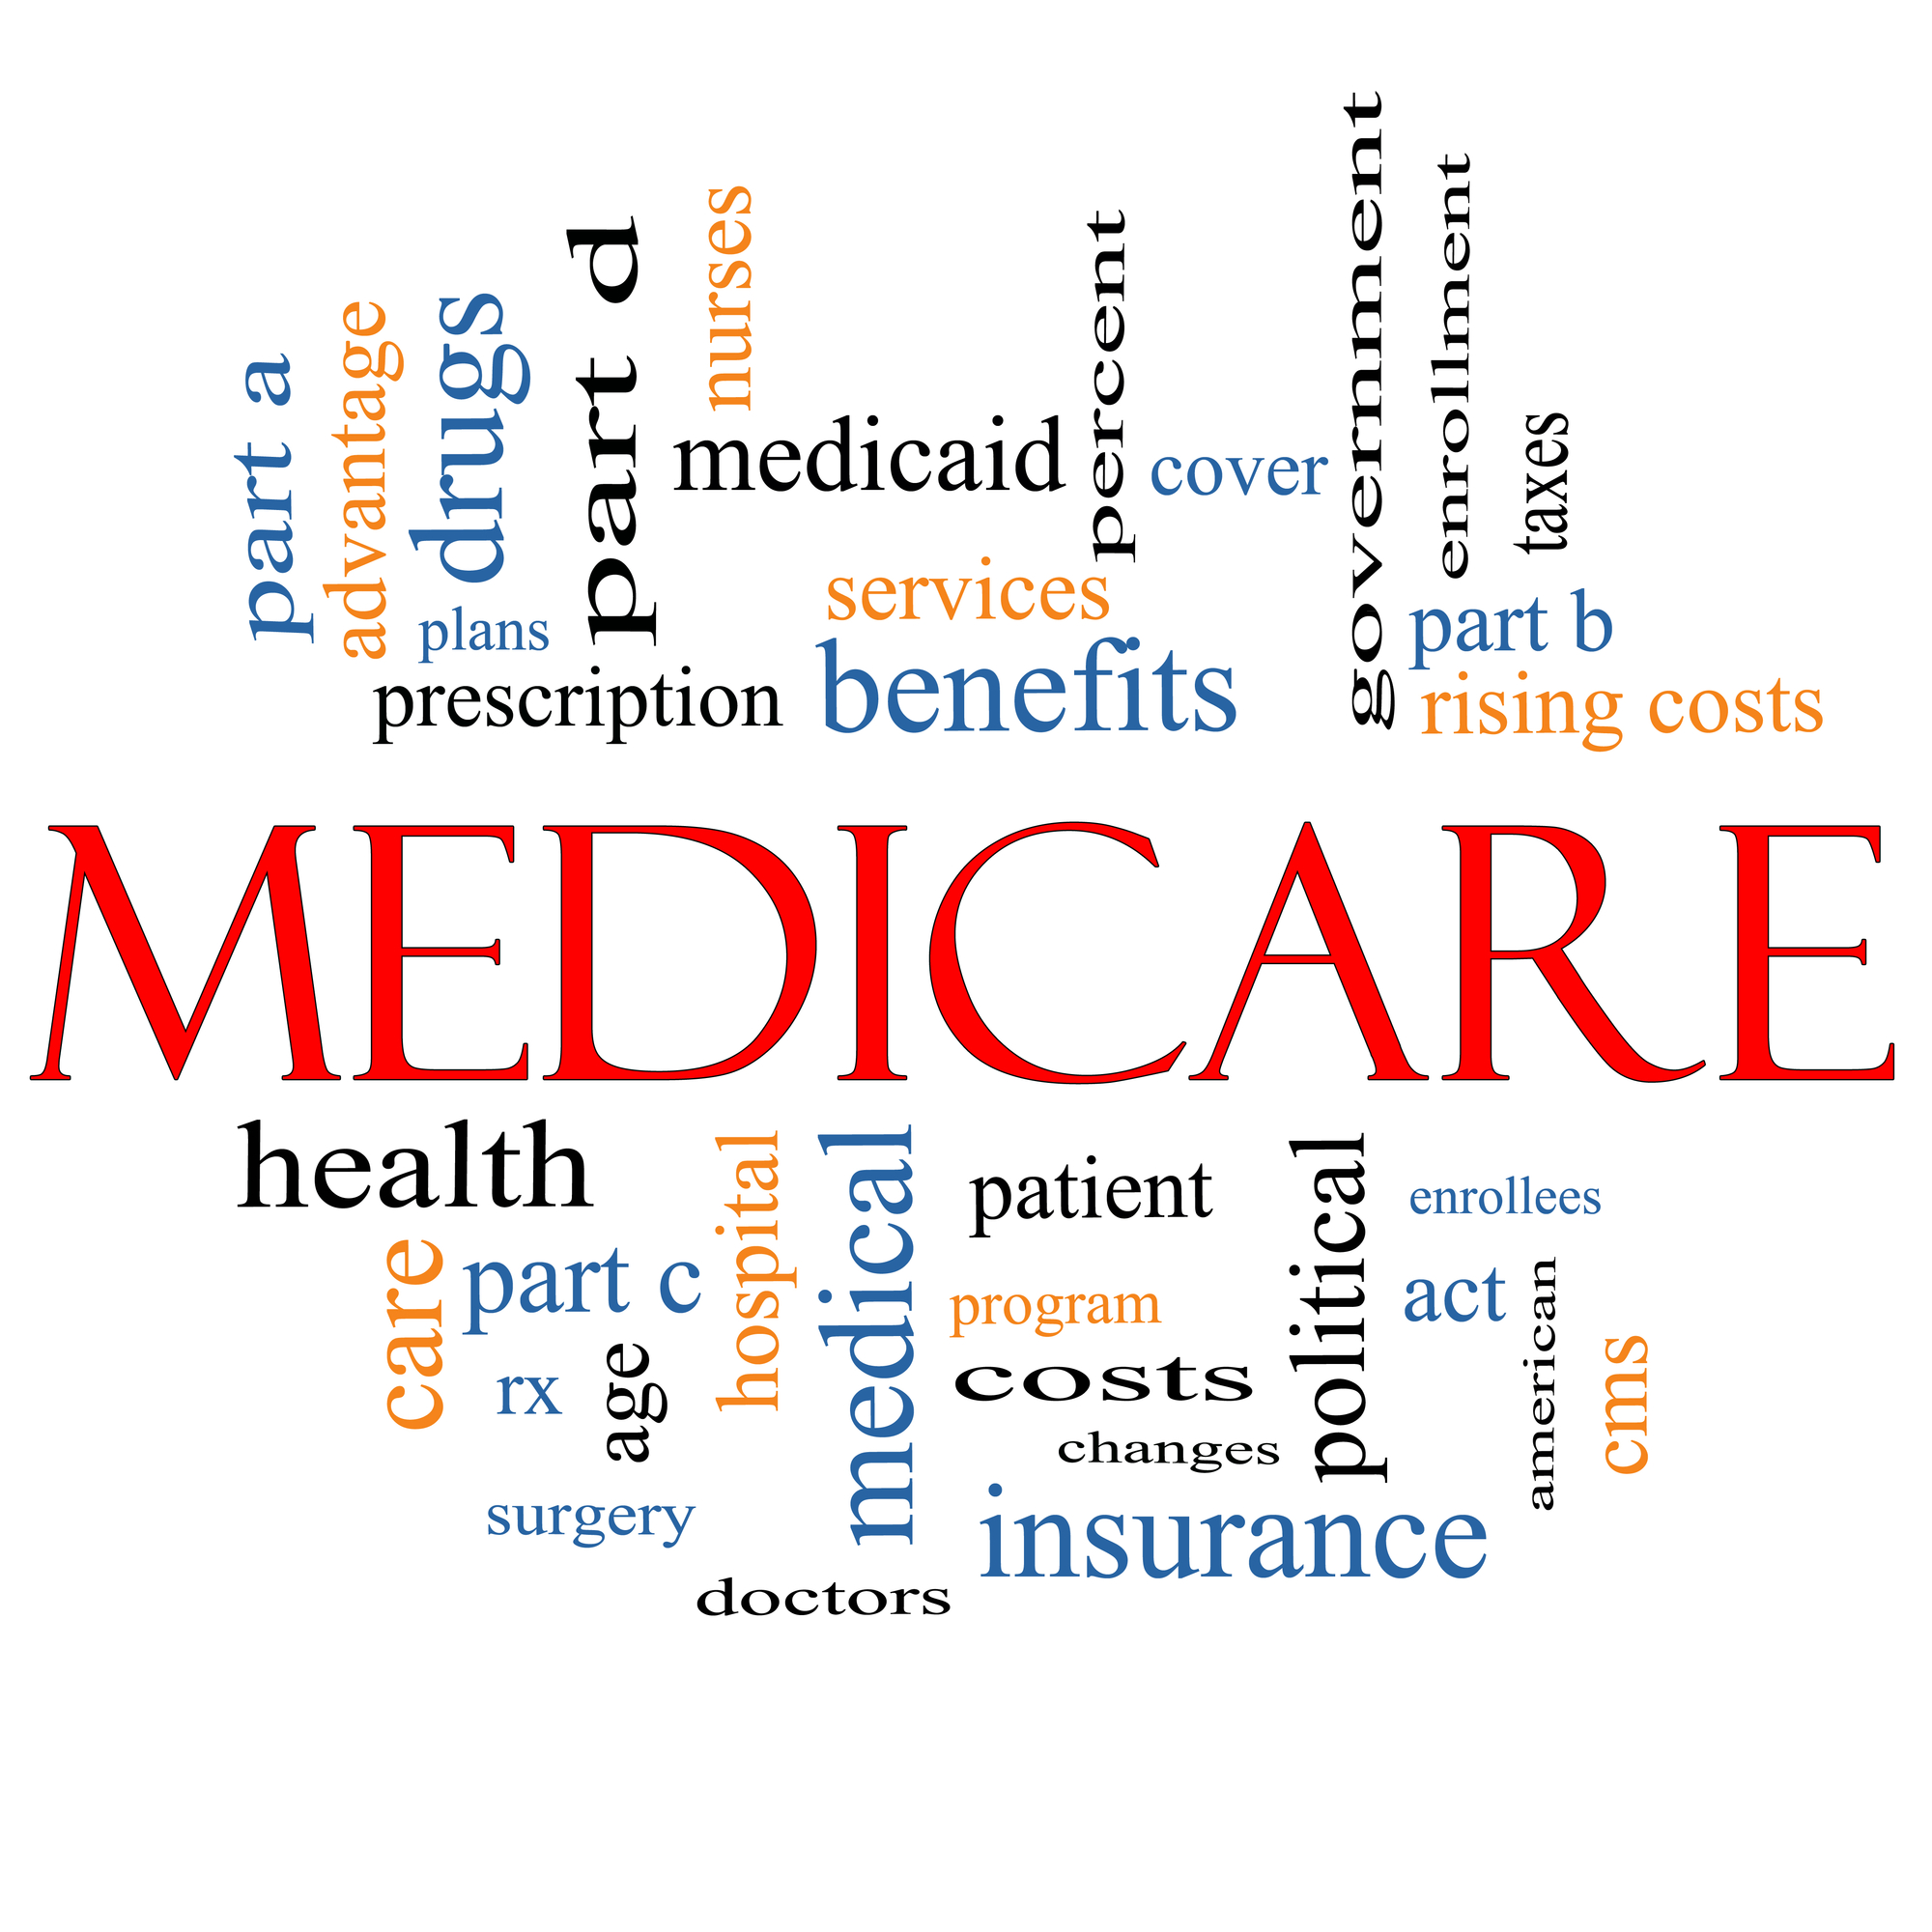 Claim Contact Numbers additionally Getting Healthcare In Spain 101467 in addition Physiotherapy Doesnt Equal Electricity Electrotherapy together with Long Term Disability Insurance Vs Long Term Care Insurance also Motor Claim Process. on health insurance benefits clip art